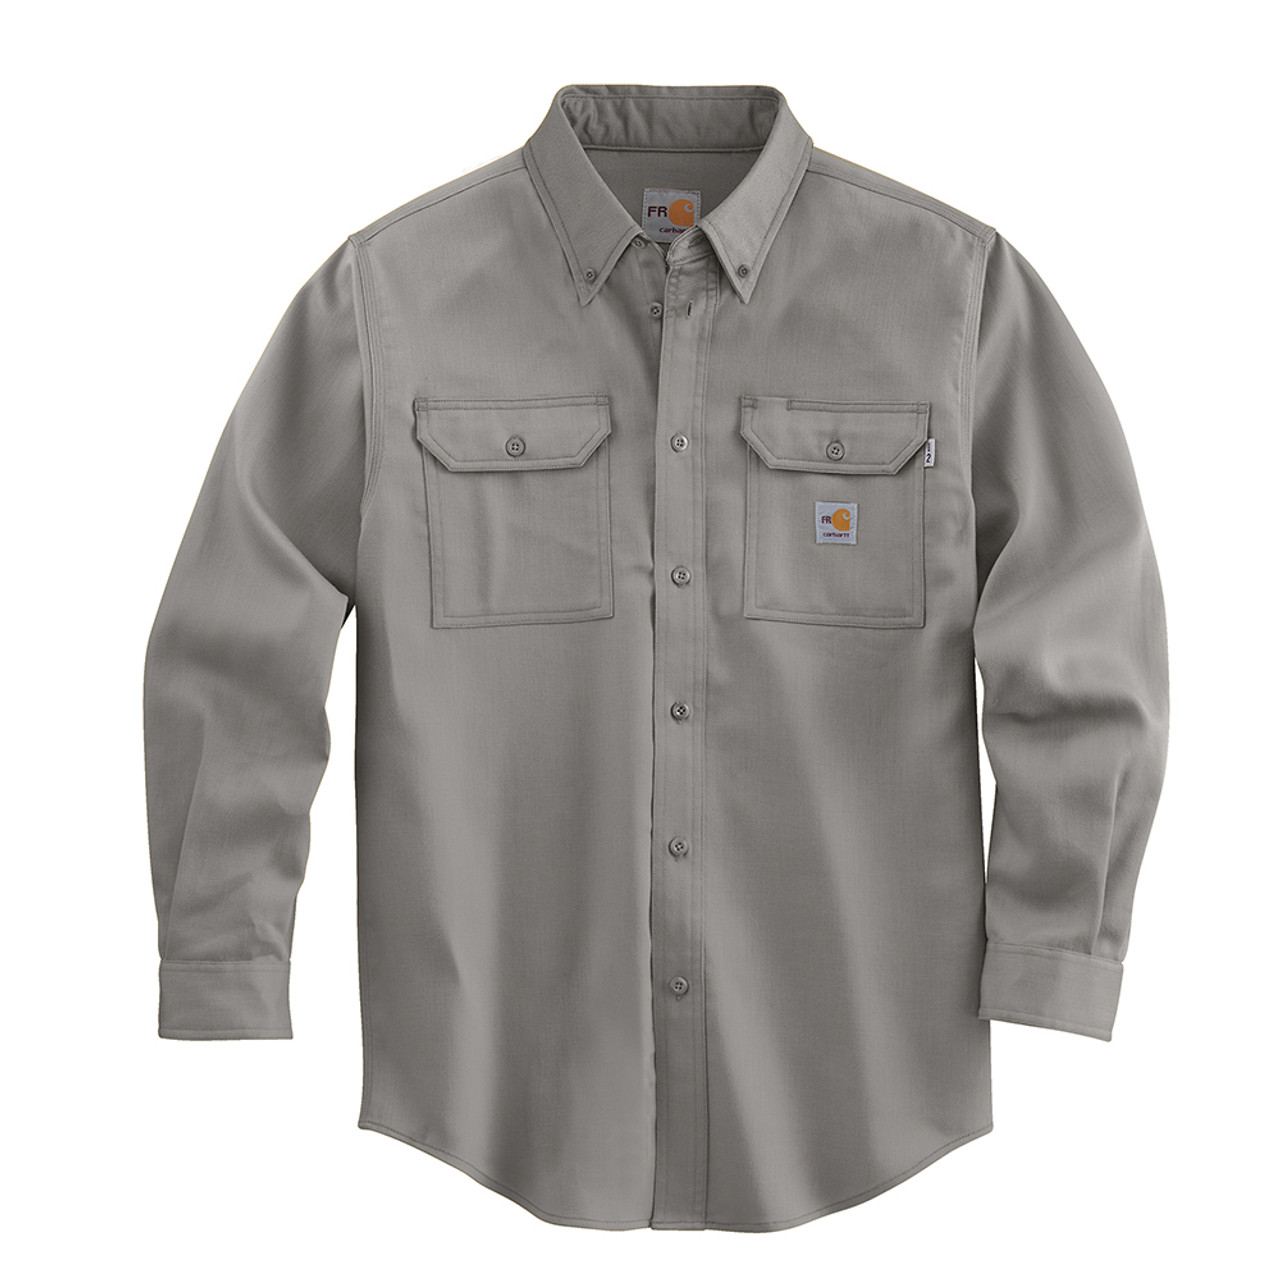 92fbbe0342f FRS003 Men s Flame Resistant Lightweight Twill Shirt